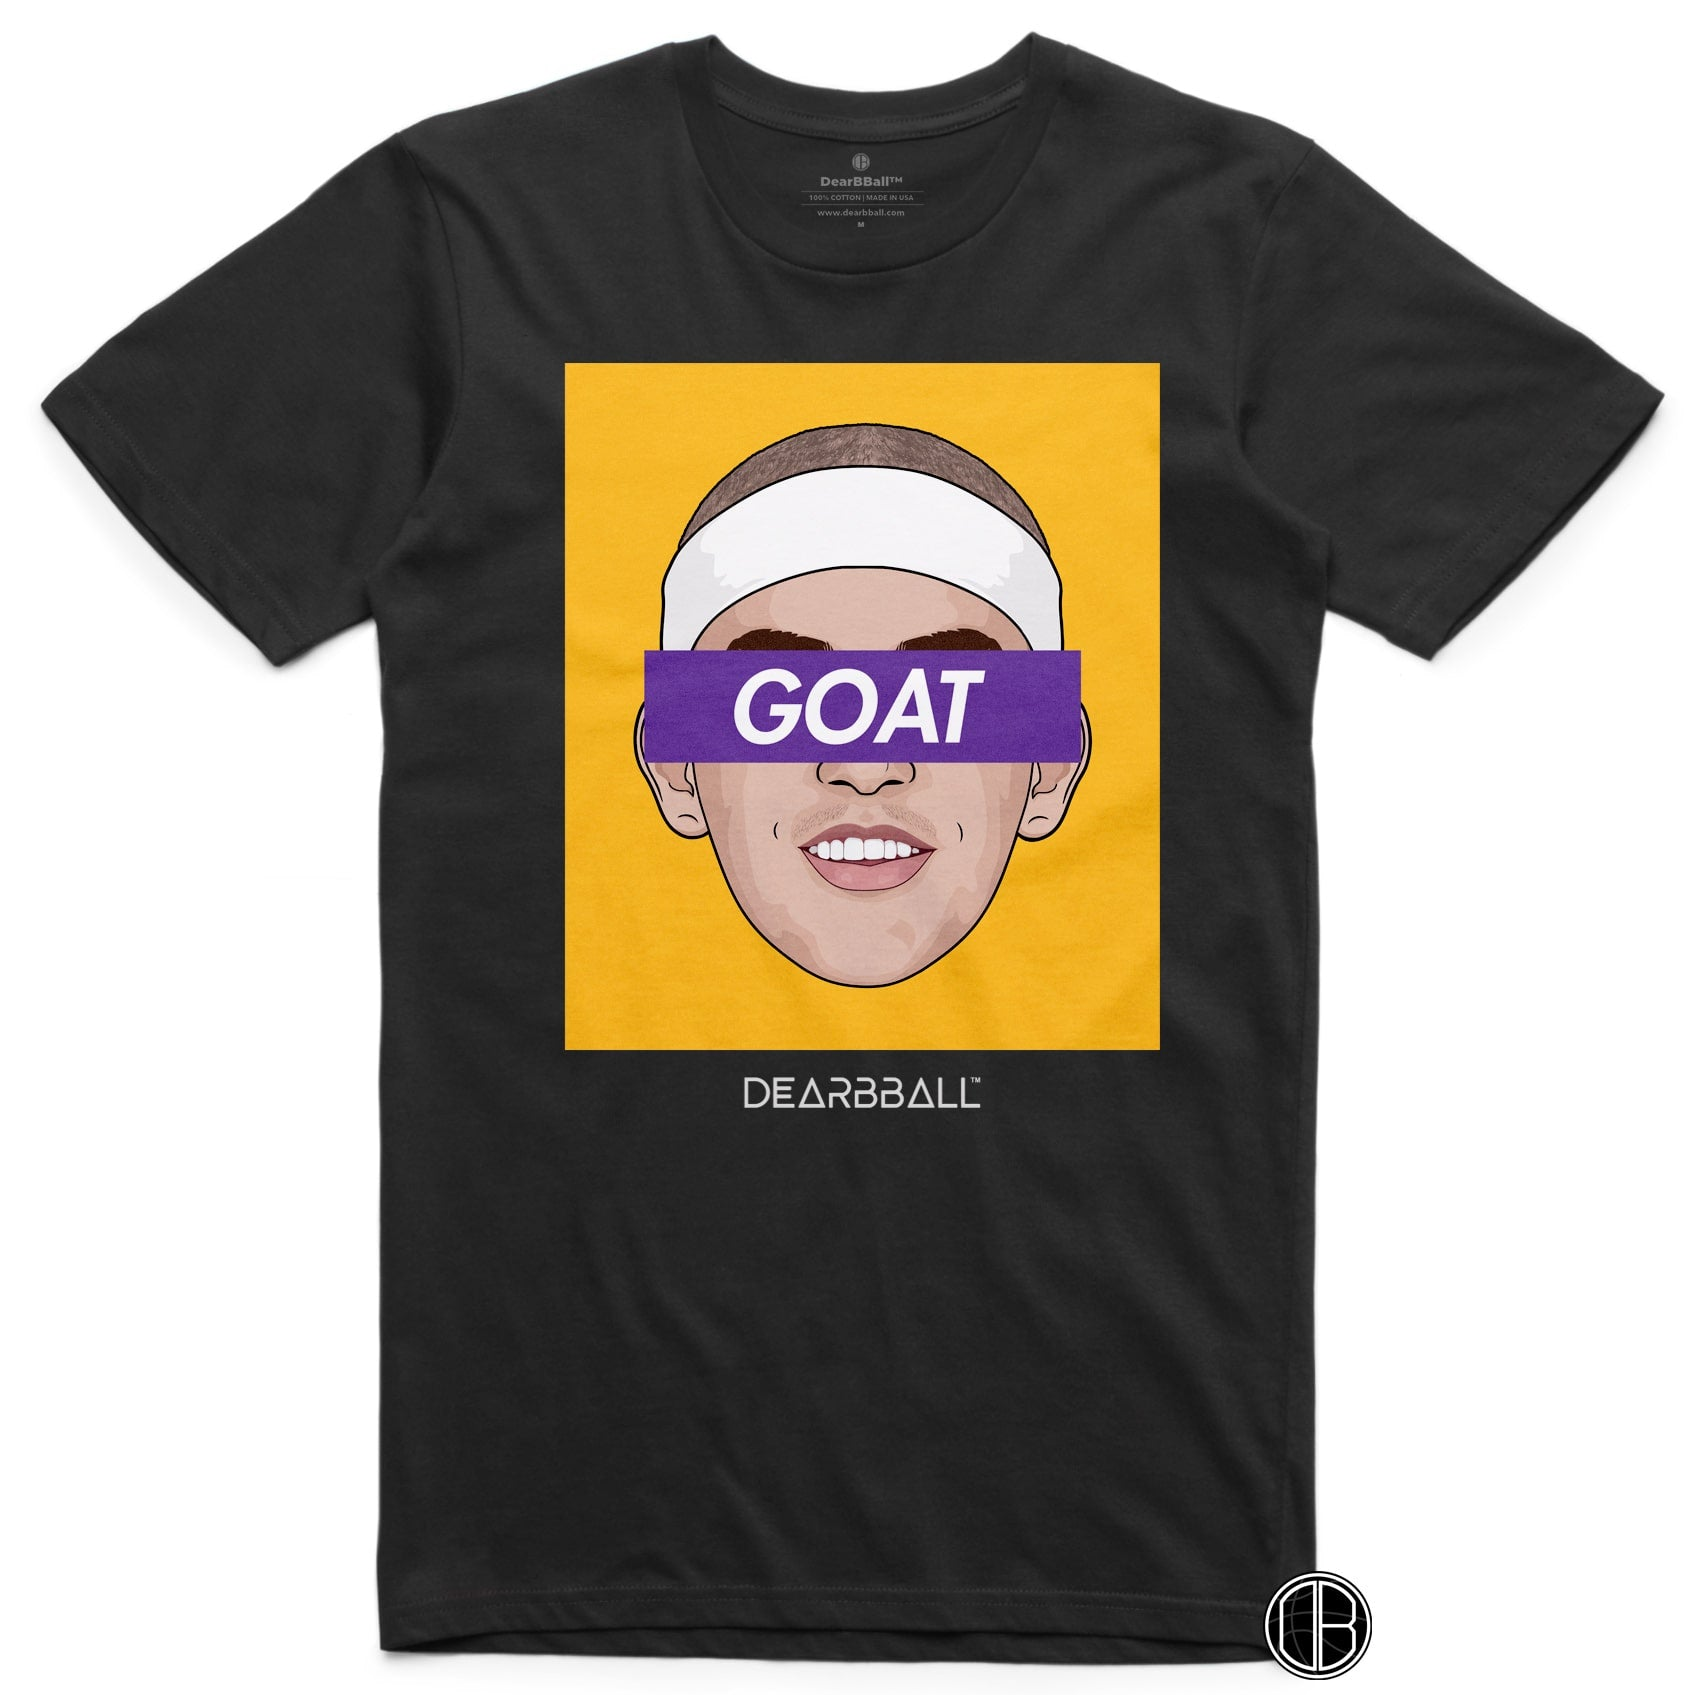 Alex-Caruso-T-Shirt-Goat-yellow-Los-Angeles-Lakers-Basketball-Dearbball